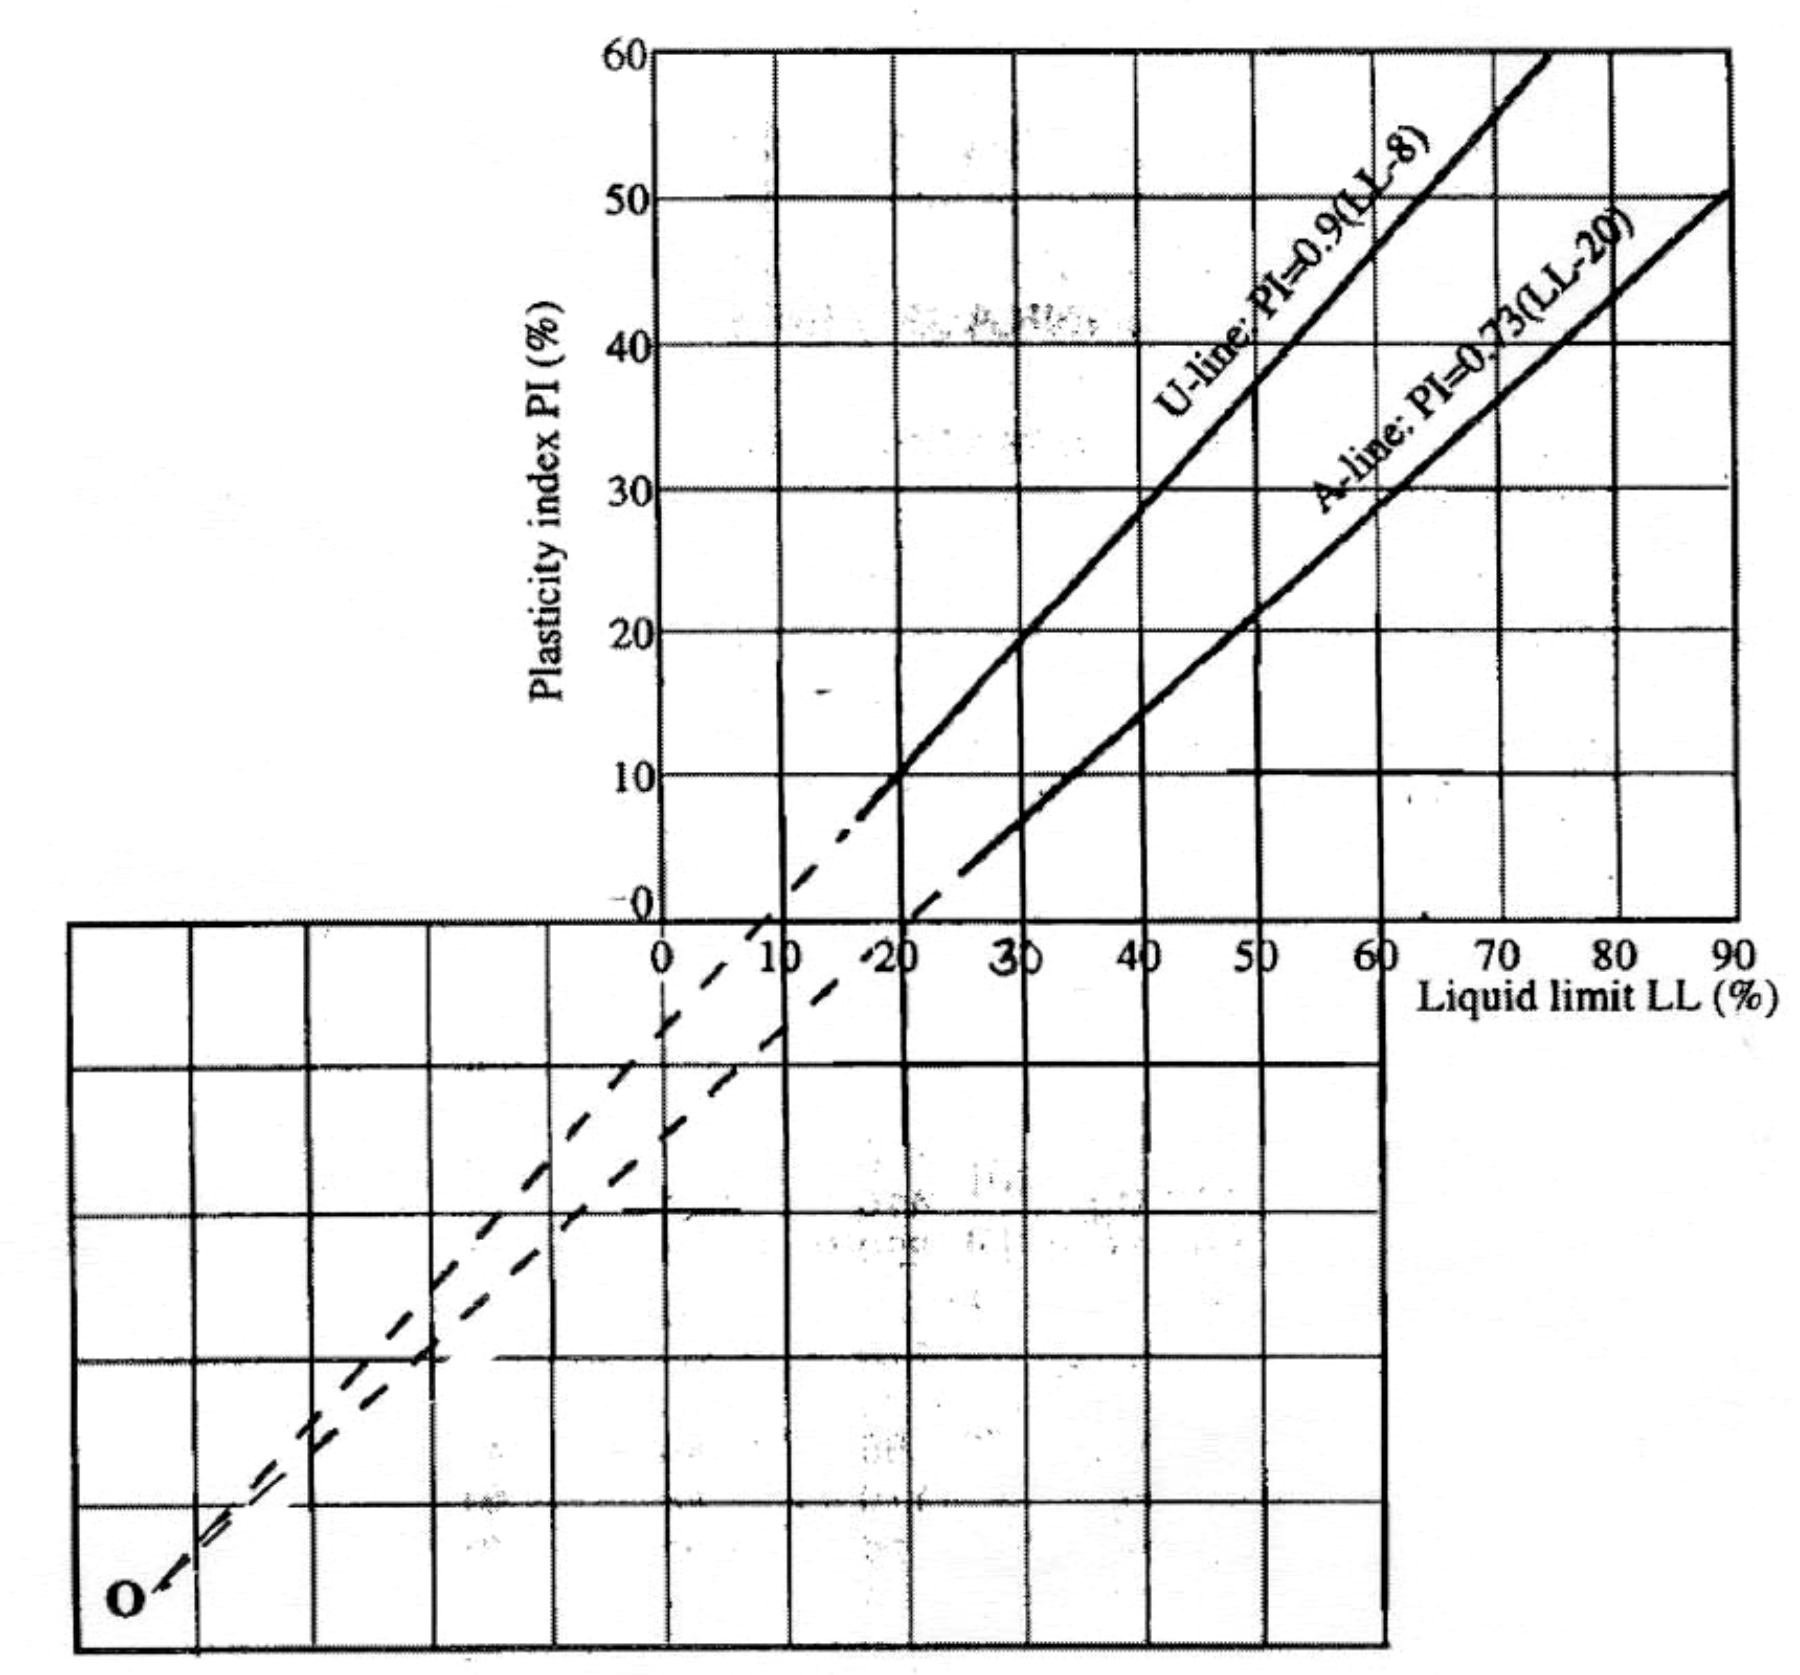 Blank graph for shrinkage limit determination